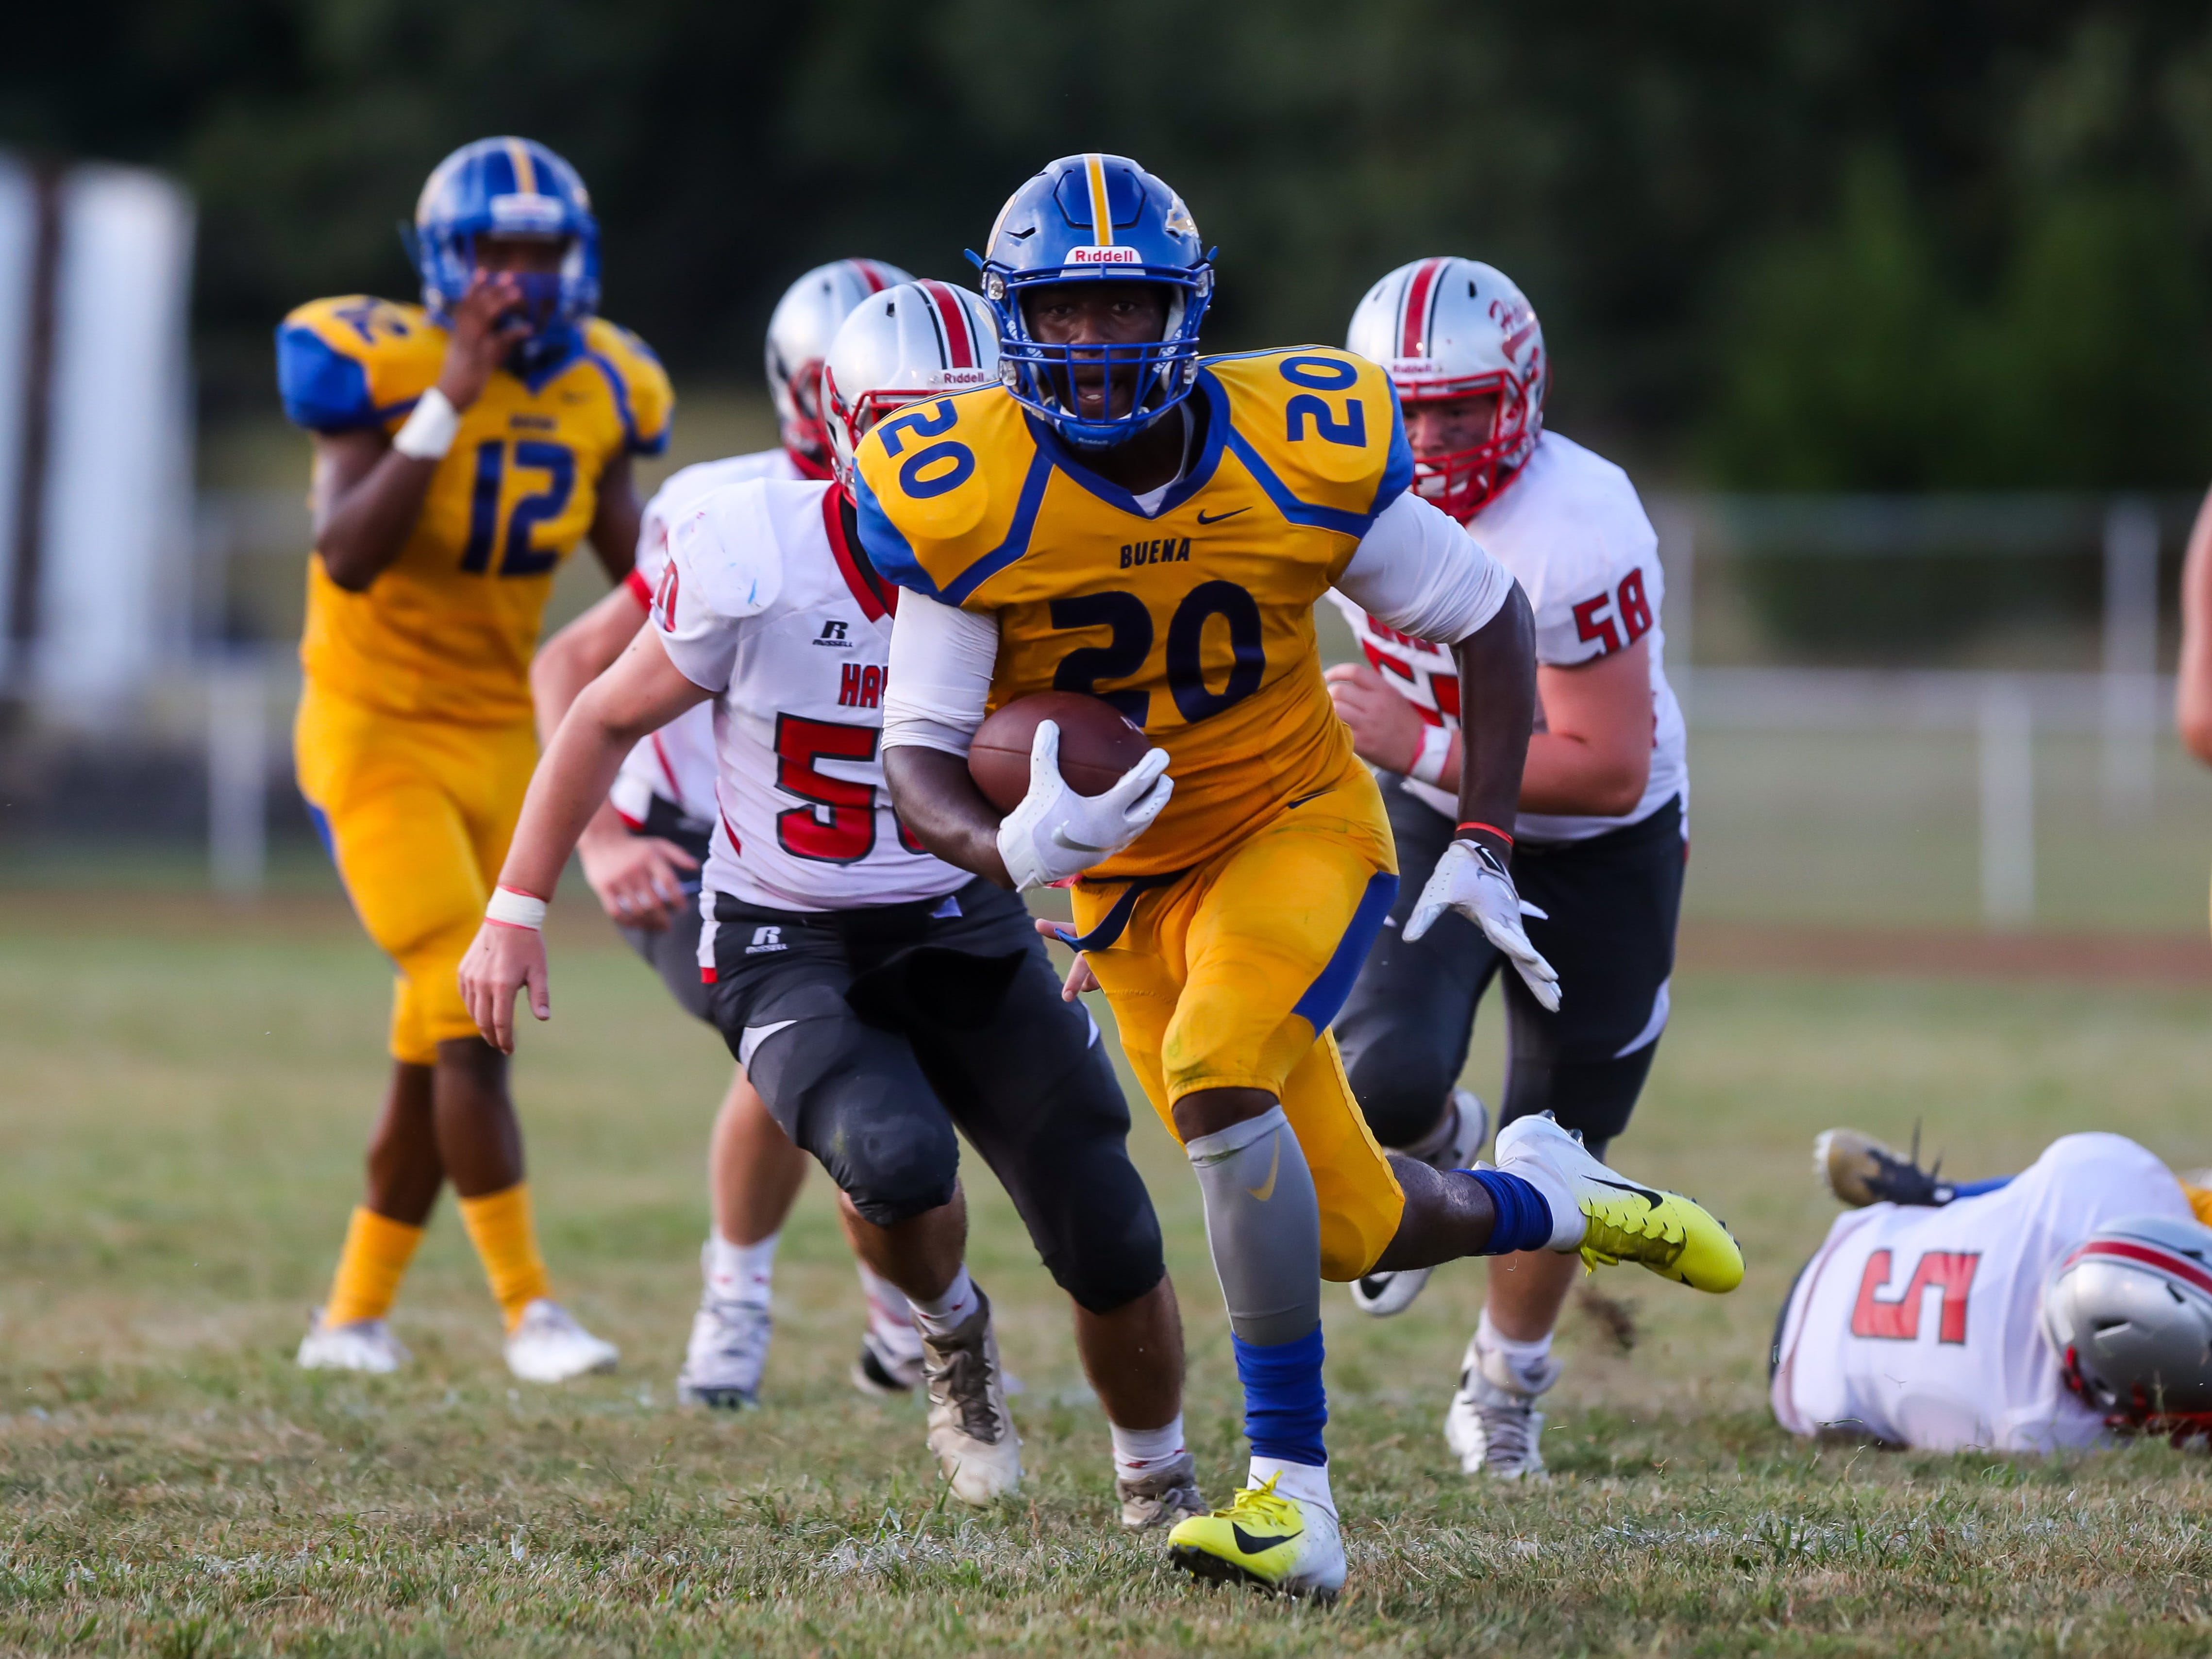 Buena's Byron Spellman runs for a 48 yard touchdown in the first quarter of Friday night's football game between Buena and Haddon Township at Buena High School on September 7, 2018.